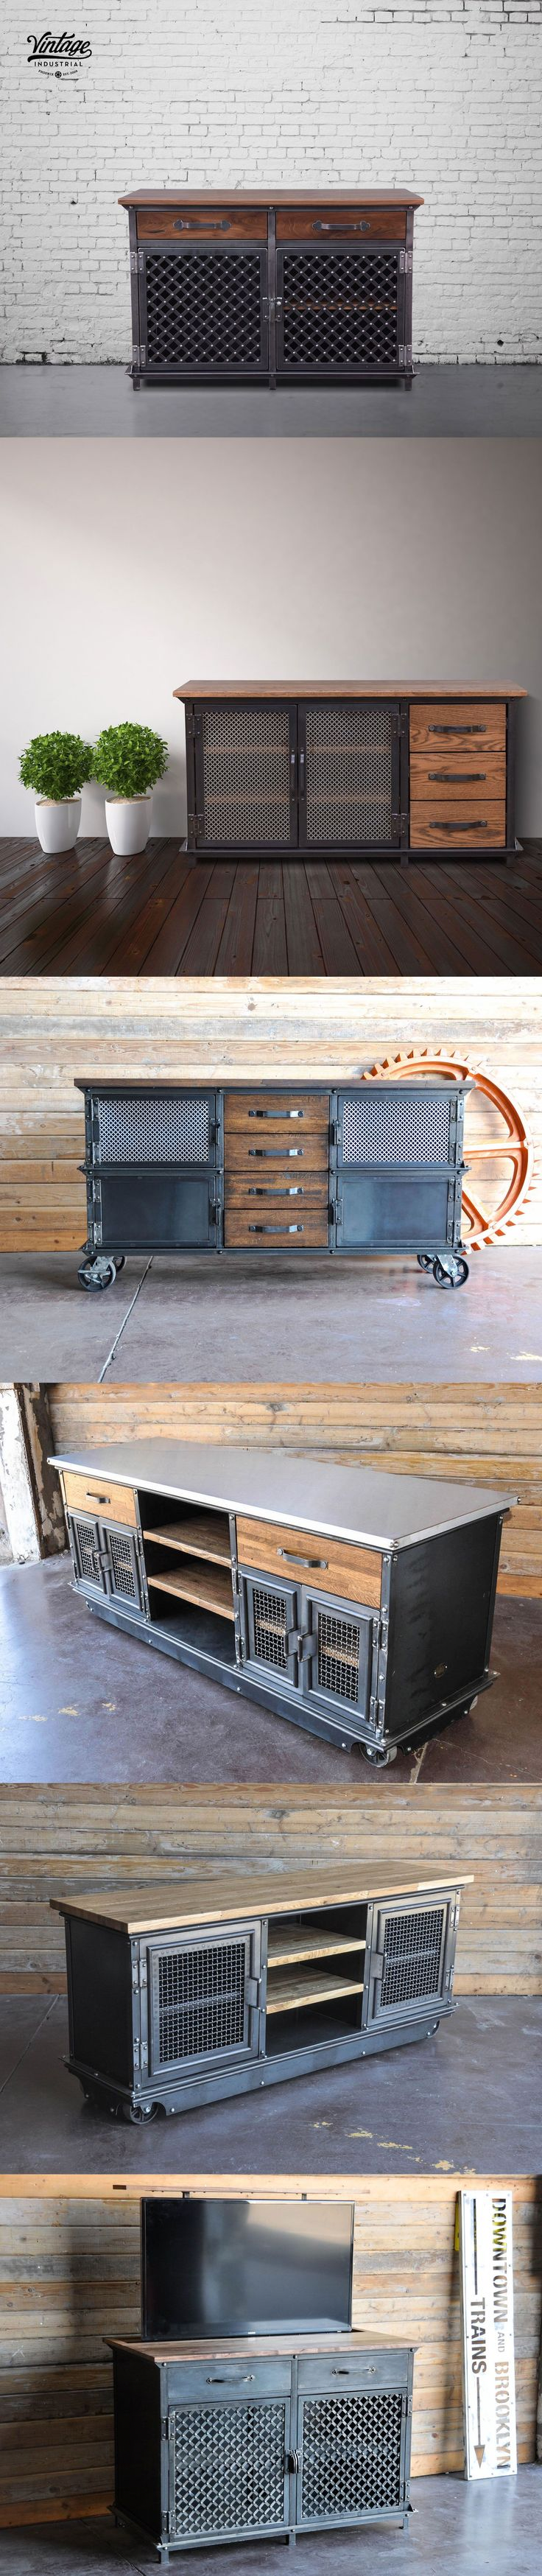 Console tables built by Vintage Industrial Furniture in Phoenix. We make them from scratch and can customize them in many ways.